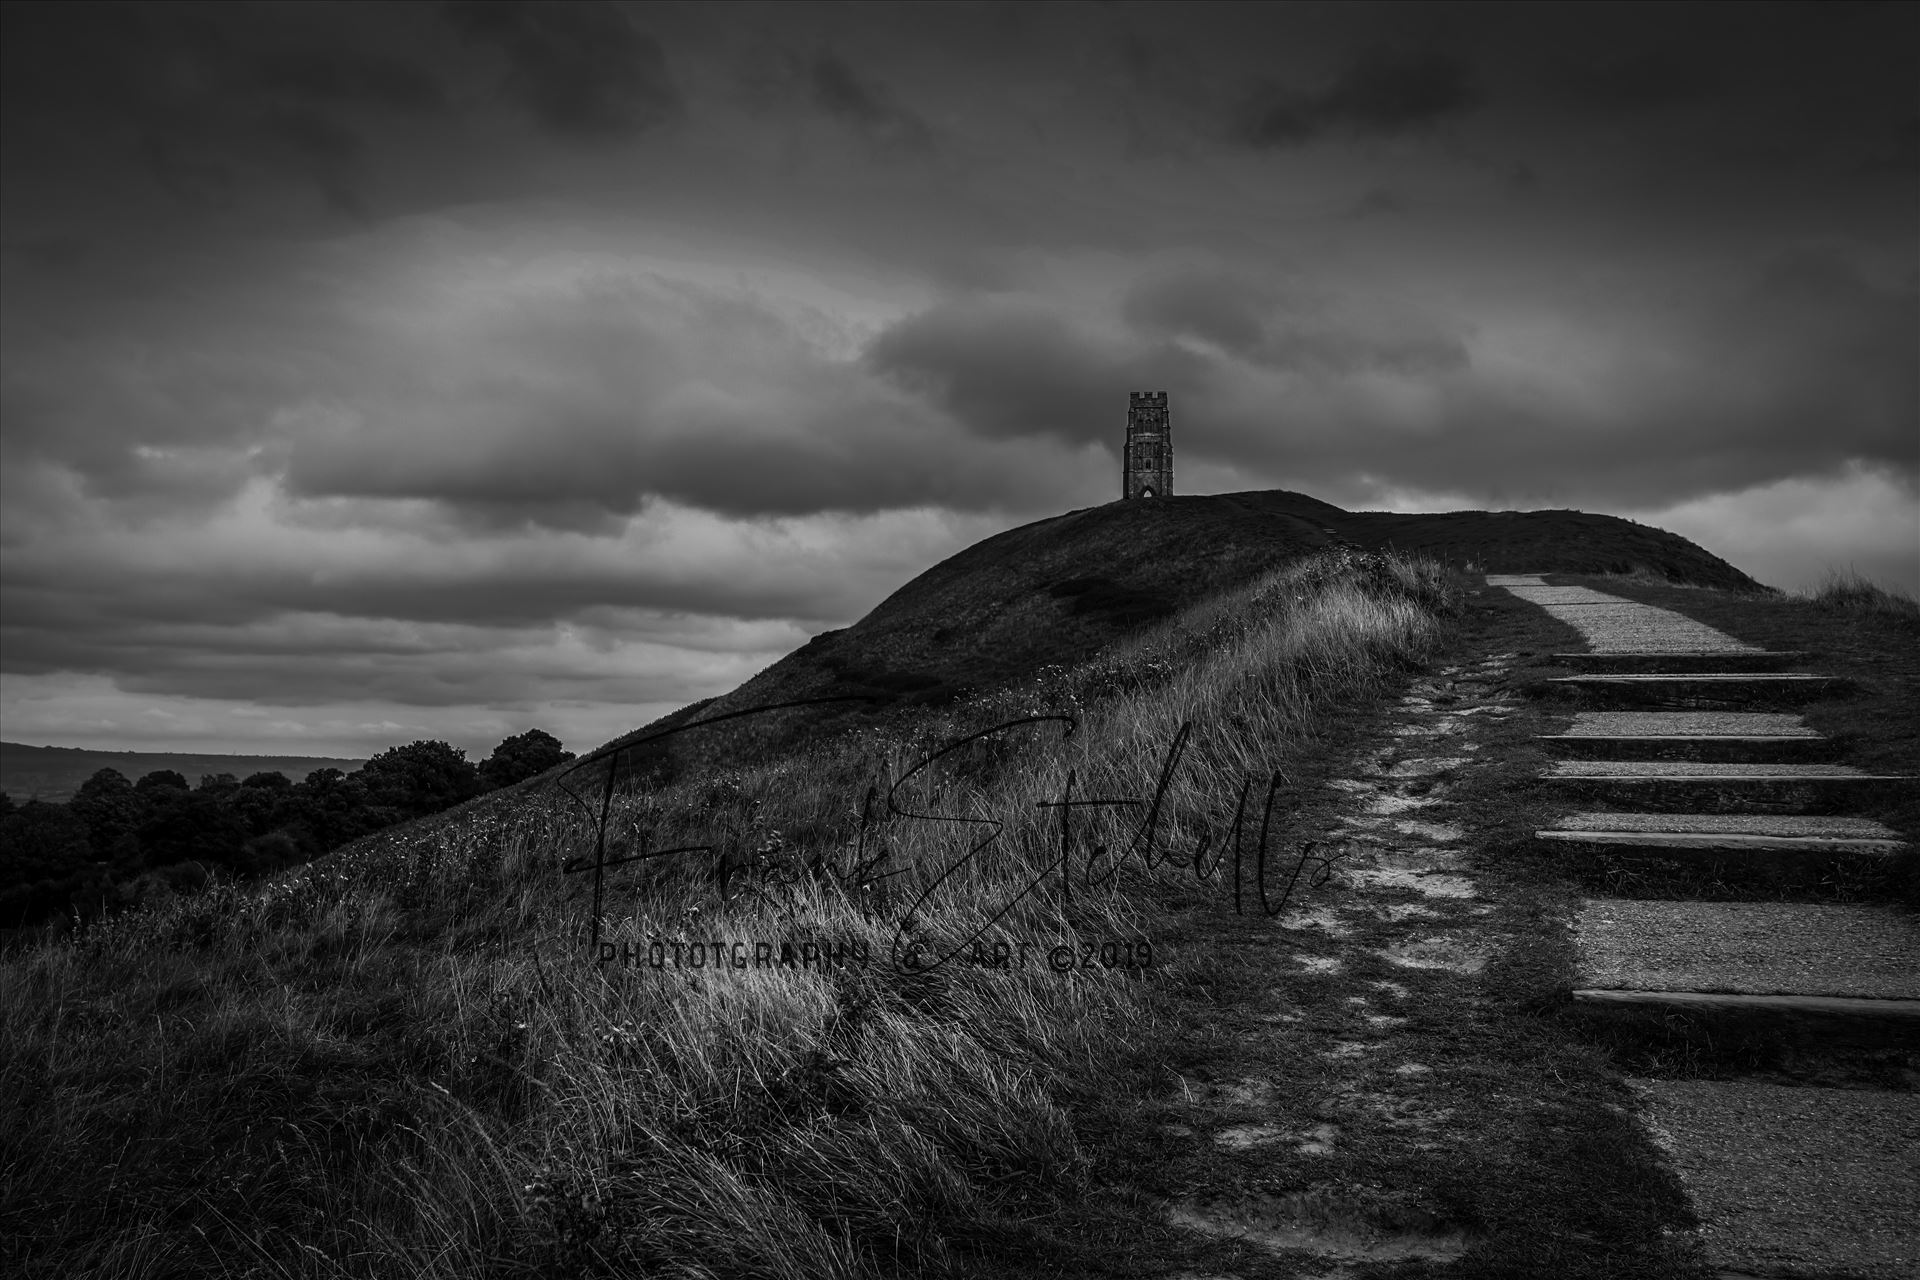 Up To The Tor - A trip to Glastonbury Abbey and the famous Tor. Walking up towards the Tor from Glastonbury brings you to the meandering 'stairway steps' that wrap their way round the mound to make your way to the Tor and the magnificent views from the top. 24/09/2016 by Frank Etchells Photography